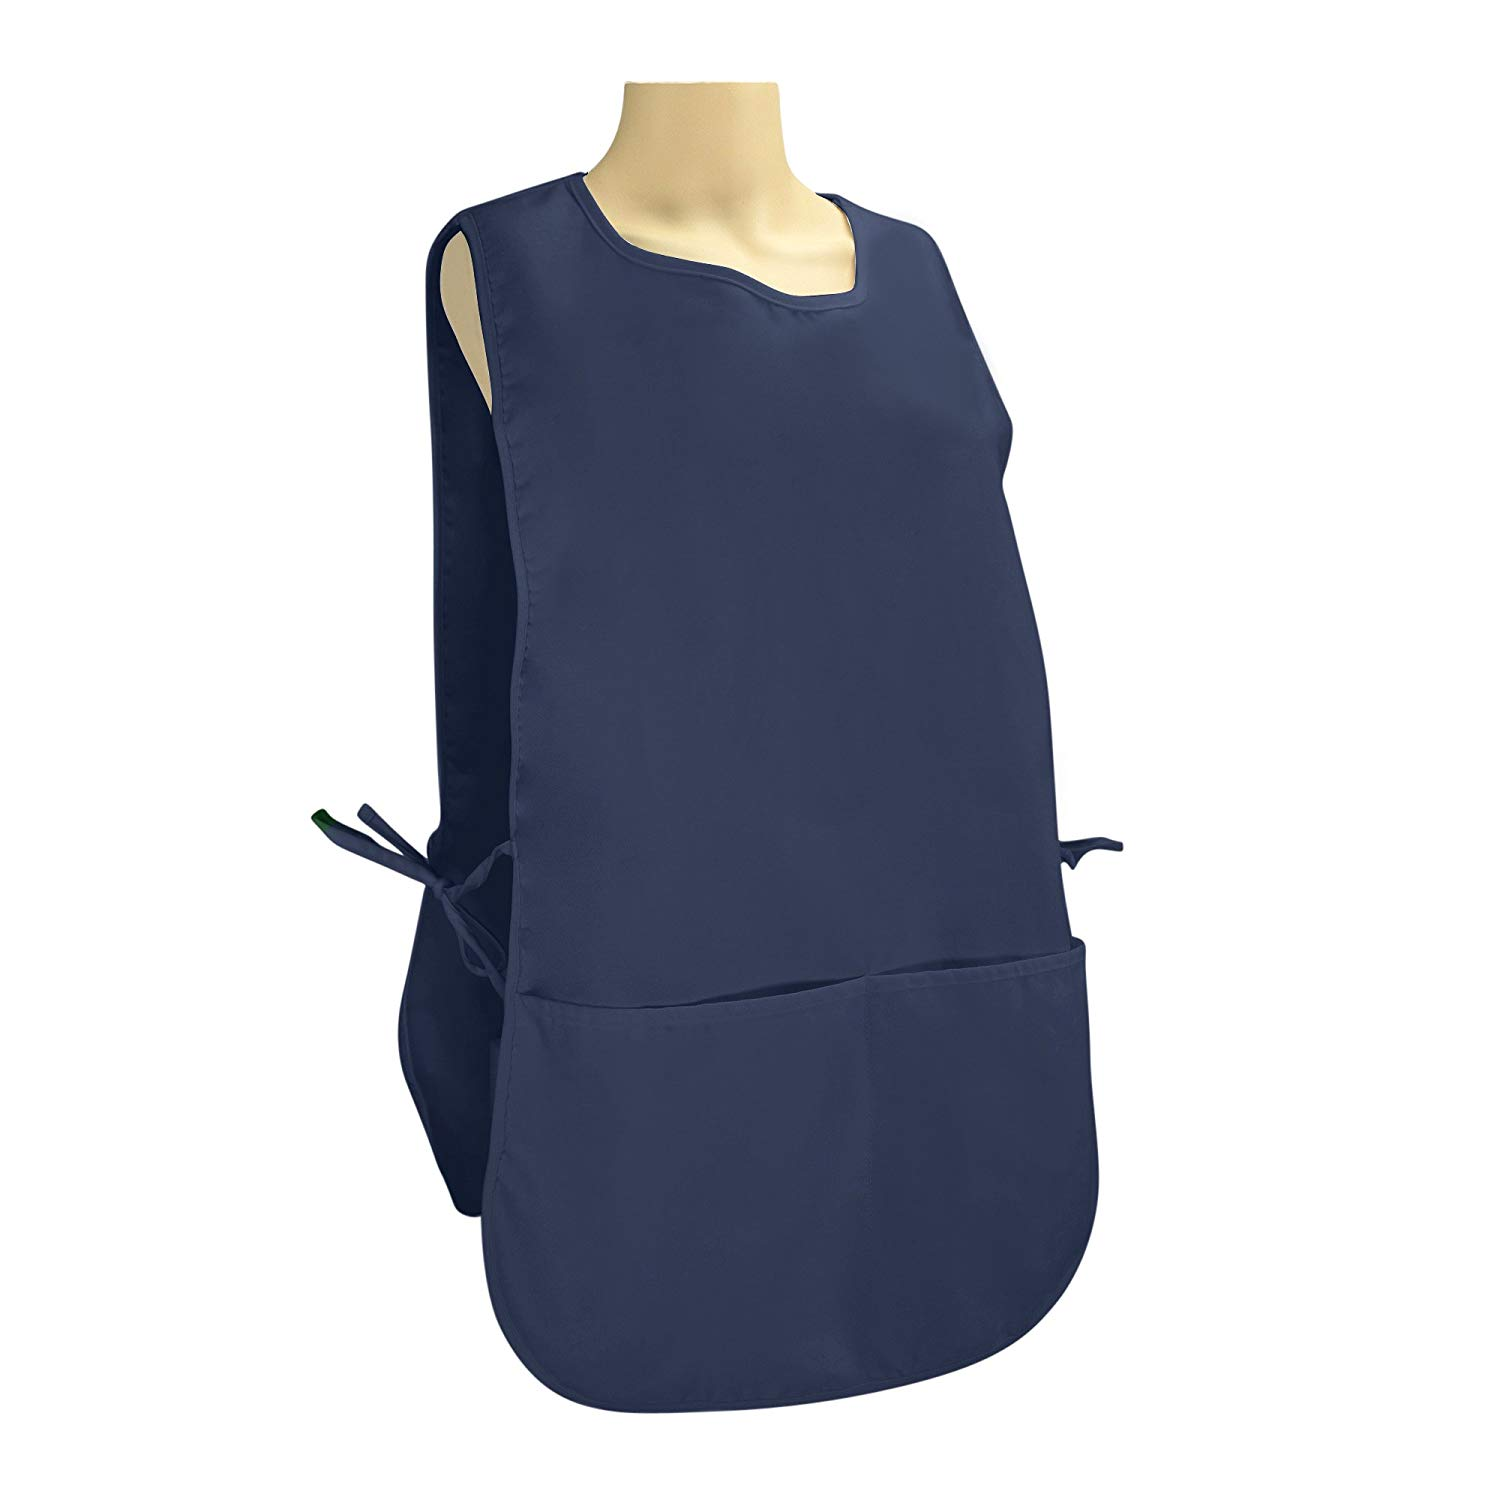 "DALIX Cobbler Apron 2 Pockets Smock Chef 28.5"" x 18.5"" Poly Cotton Navy Blue"